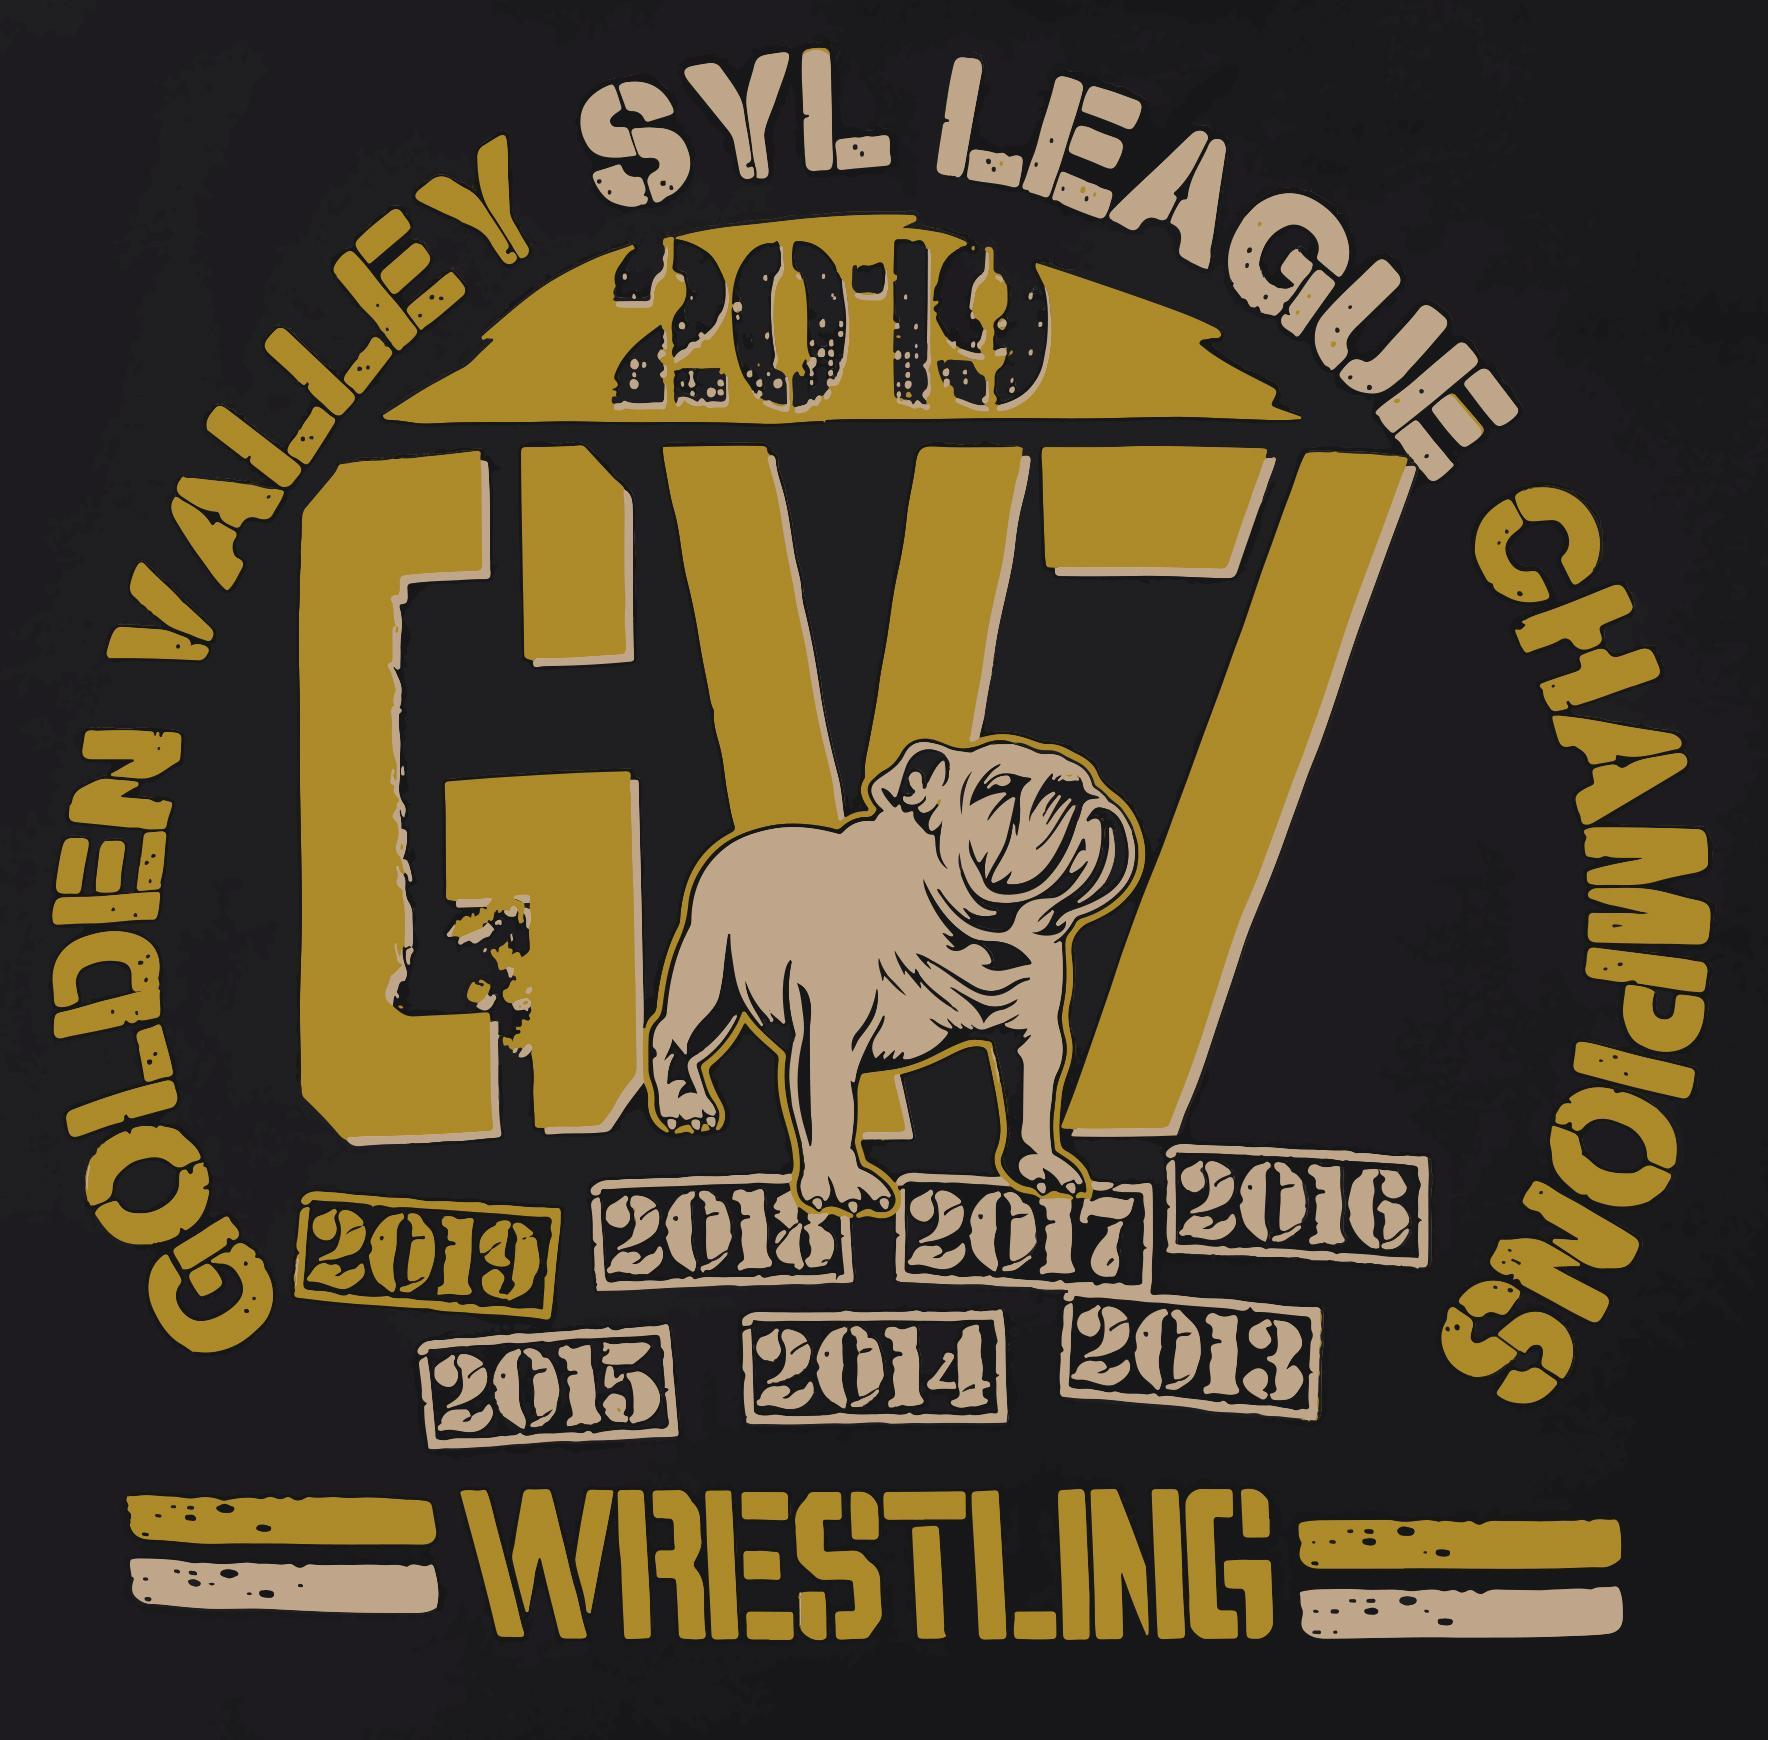 Golden Valley Wrestling SYL League Champions 7 years 2019 2018 2017 2016 2015 2014 2013